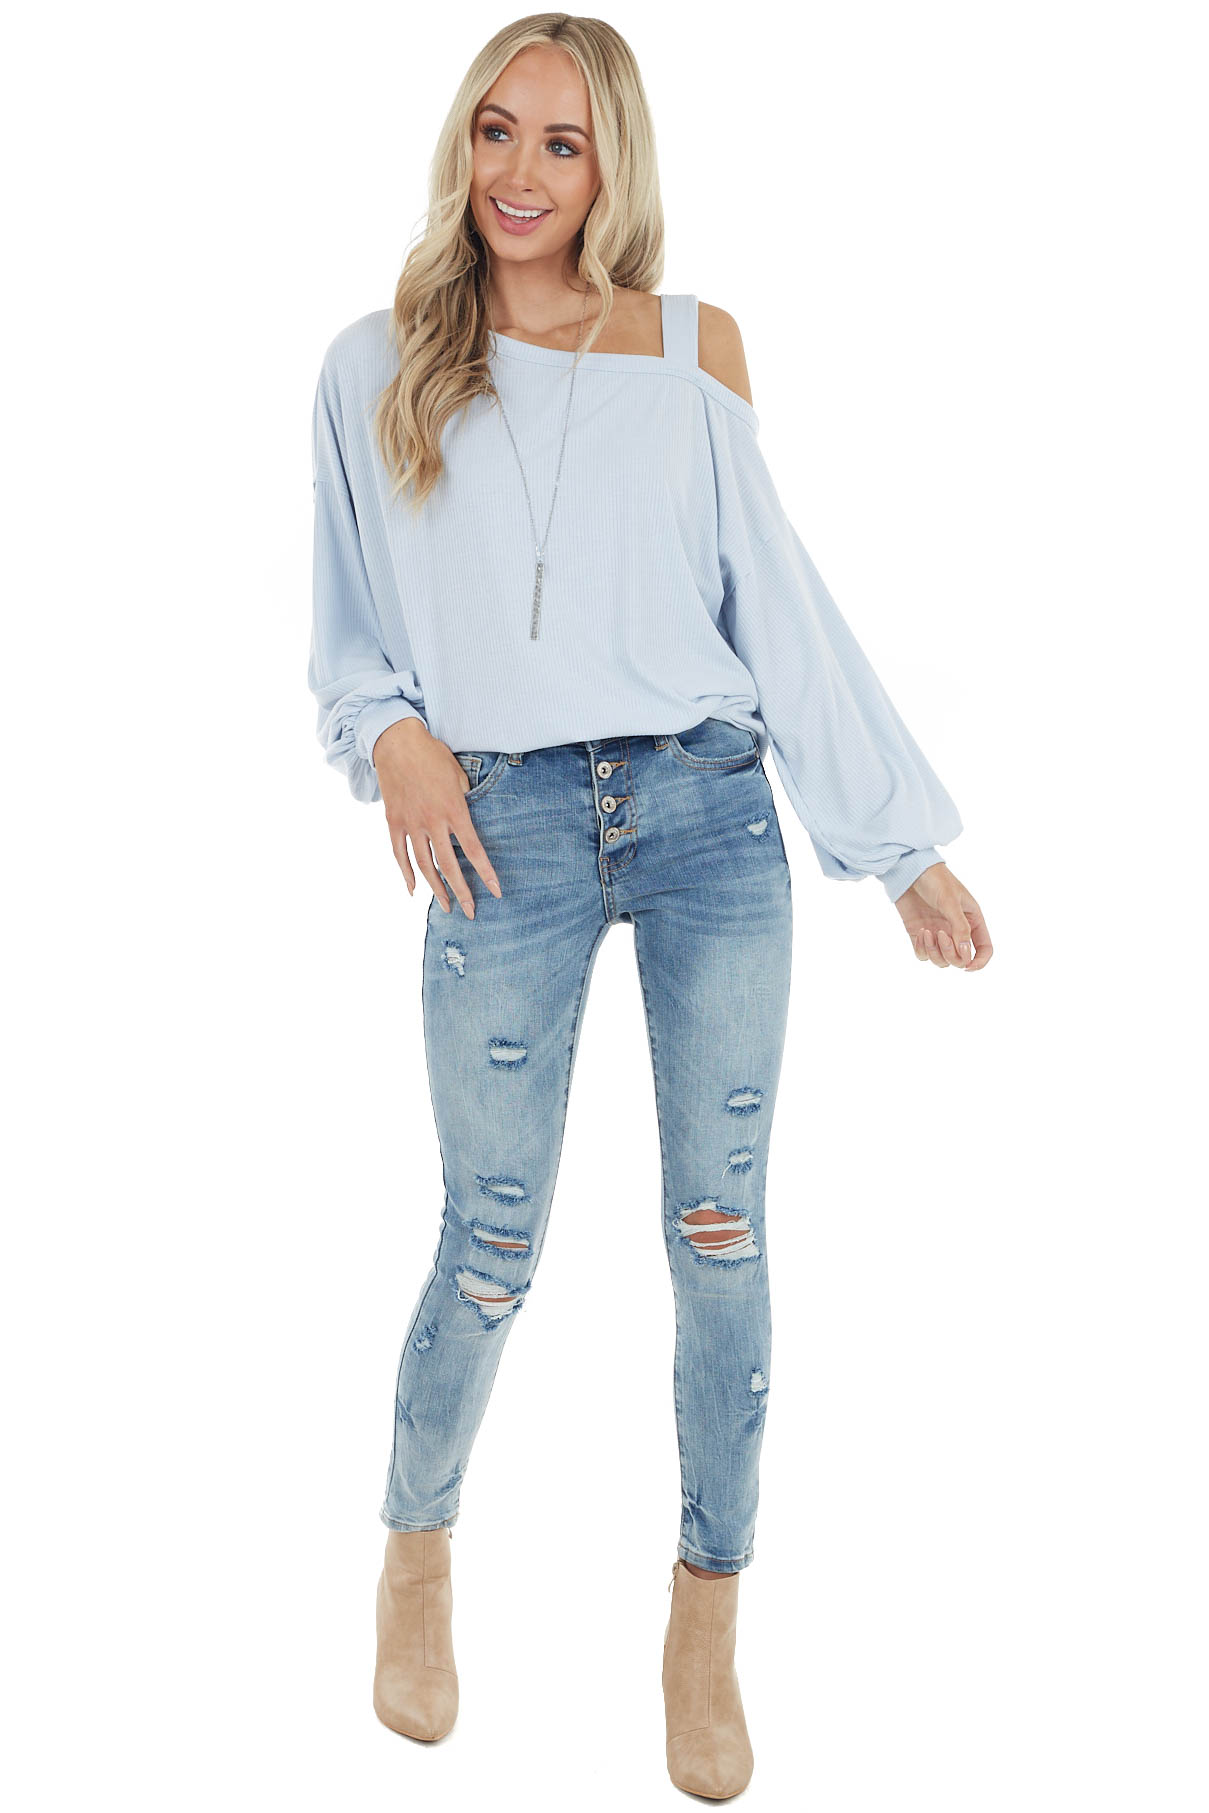 Baby Blue Bubble Sleeve Top with Single Strap Cold Shoulder